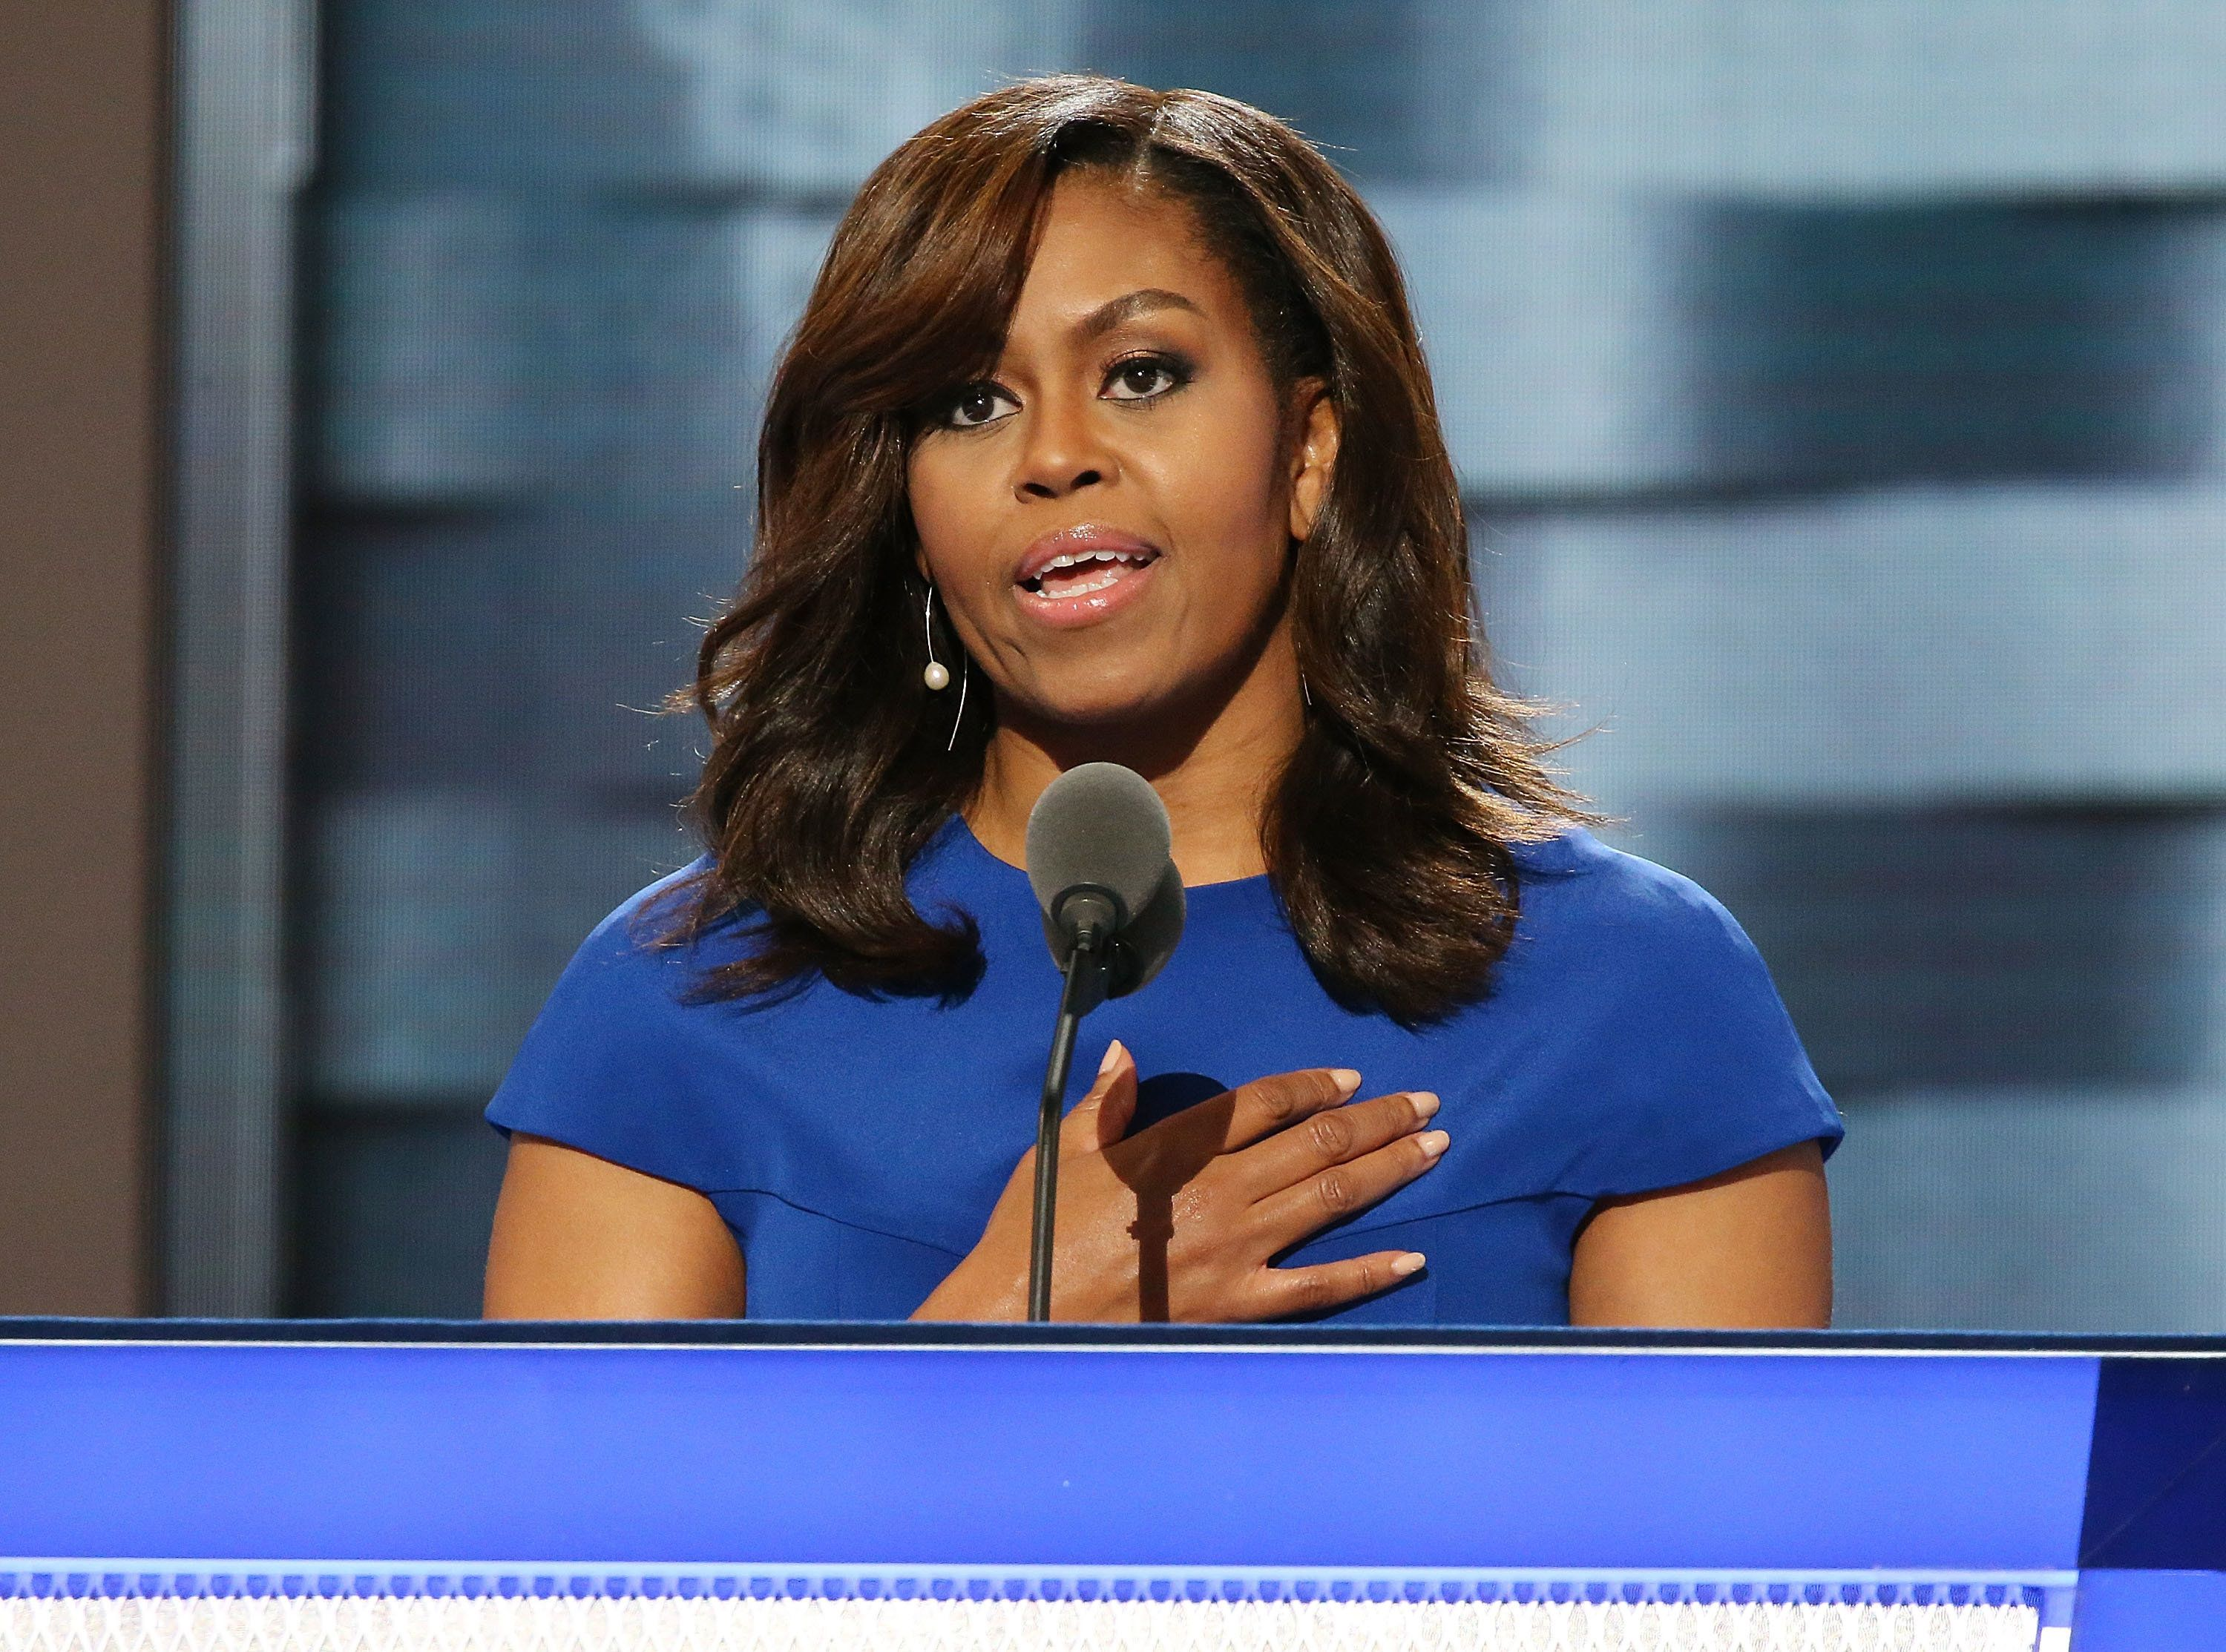 PHILADELPHIA, PA - JULY 25:  First lady Michelle Obama delivers remarks on the first day of the Democratic National Convention at the Wells Fargo Center, July 25, 2016 in Philadelphia, Pennsylvania. An estimated 50,000 people are expected in Philadelphia, including hundreds of protesters and members of the media. The four-day Democratic National Convention kicked off July 25.  (Photo by Paul Morigi/WireImage)